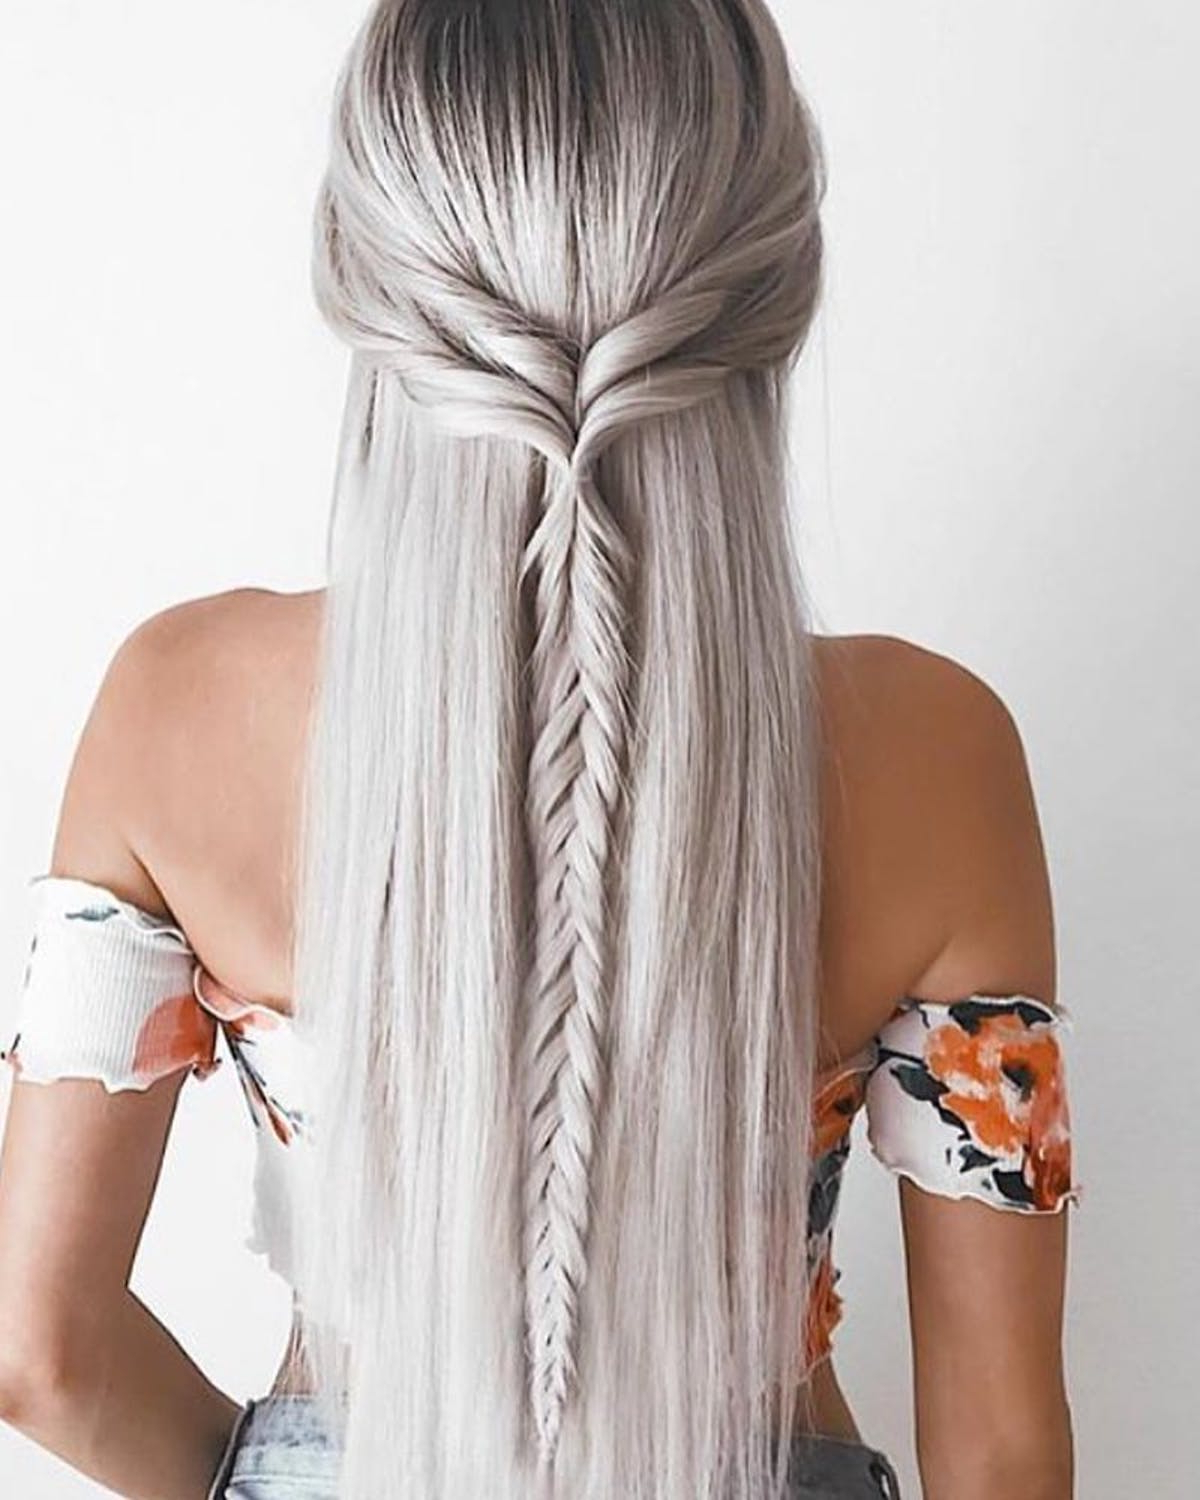 30 Long Haircuts & Hairstyles For Women To Look Gorgeous Within Well Liked Long Blonde Braid Hairstyles (Gallery 10 of 20)